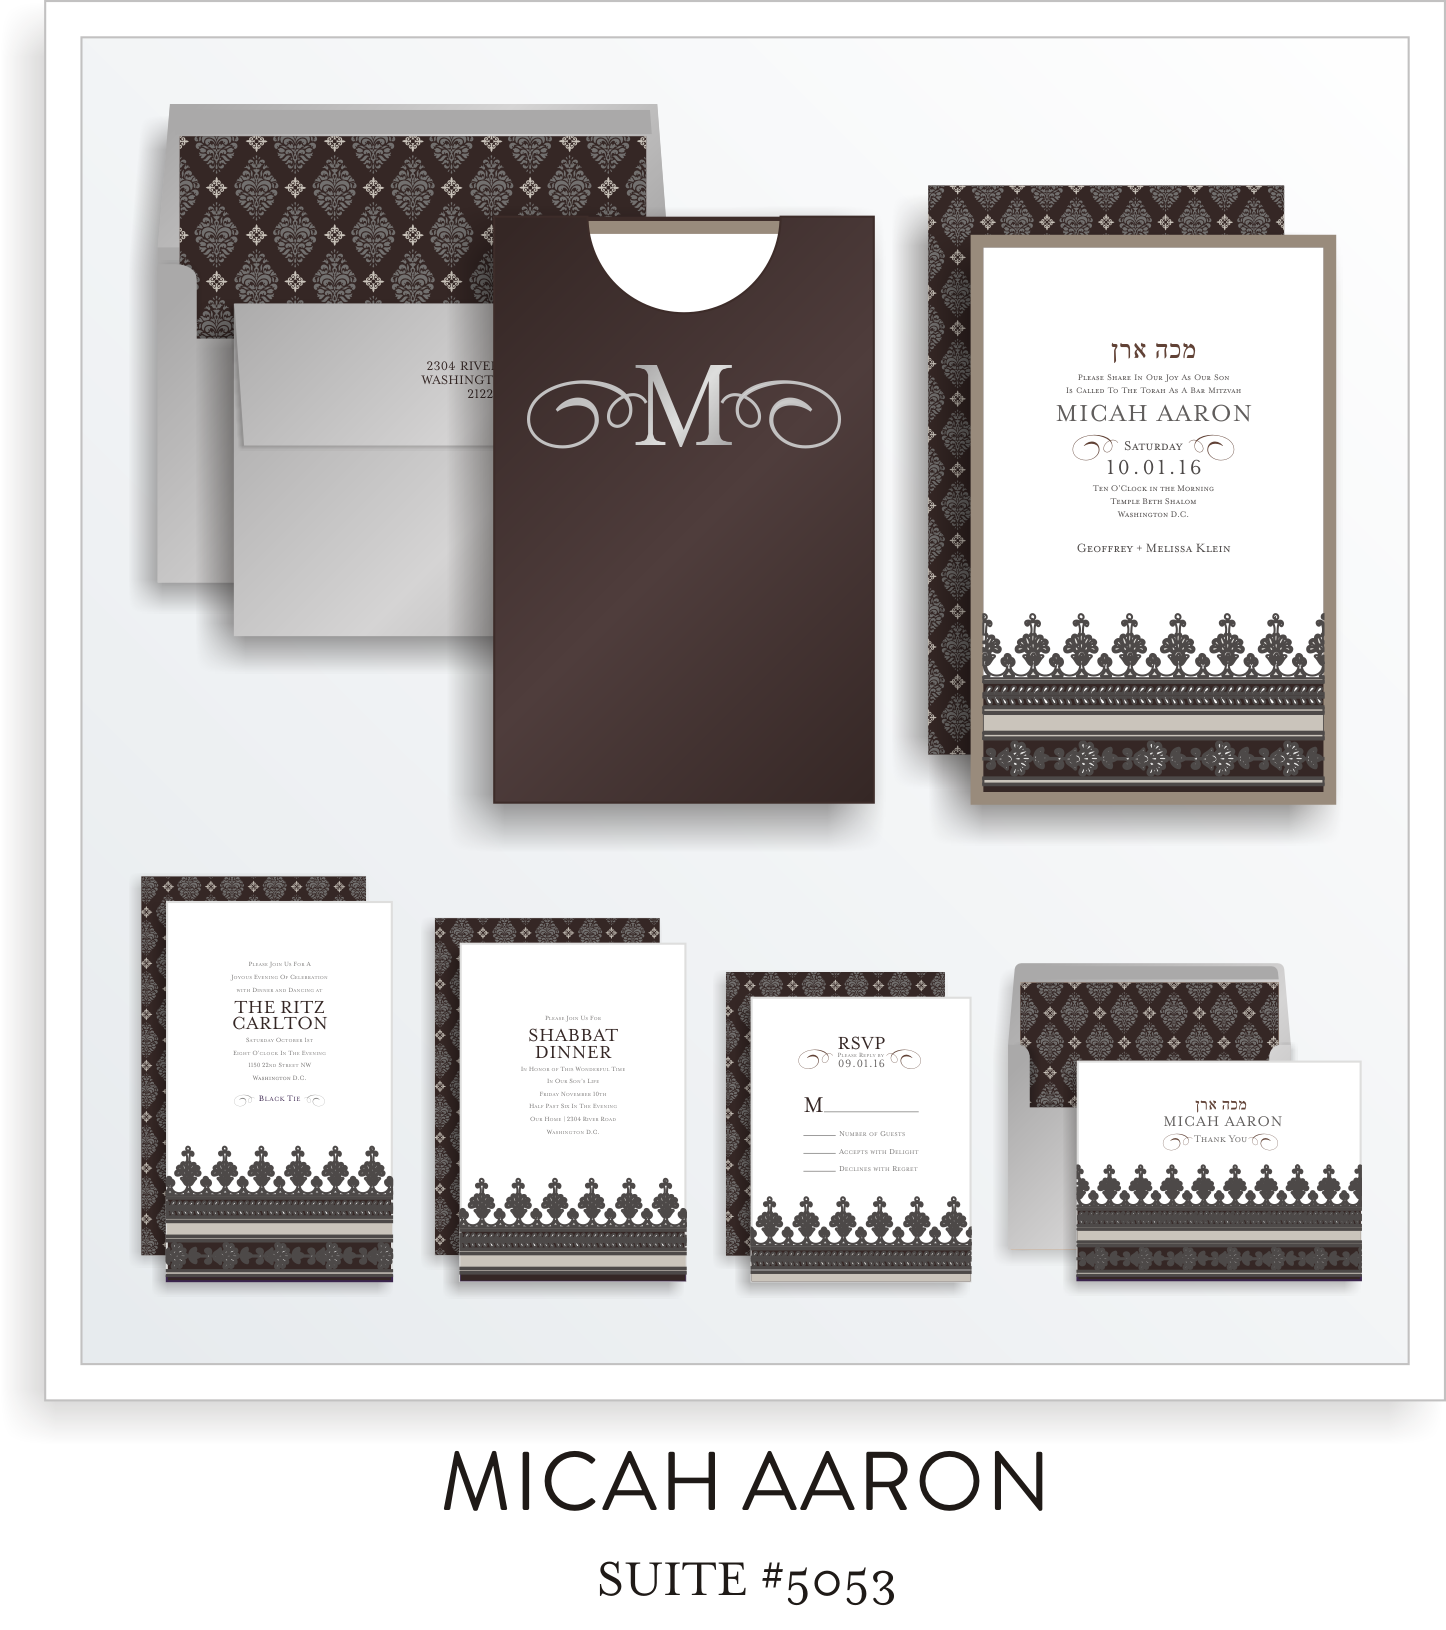 Copy of Copy of bar mitzvah invitation suite 5053